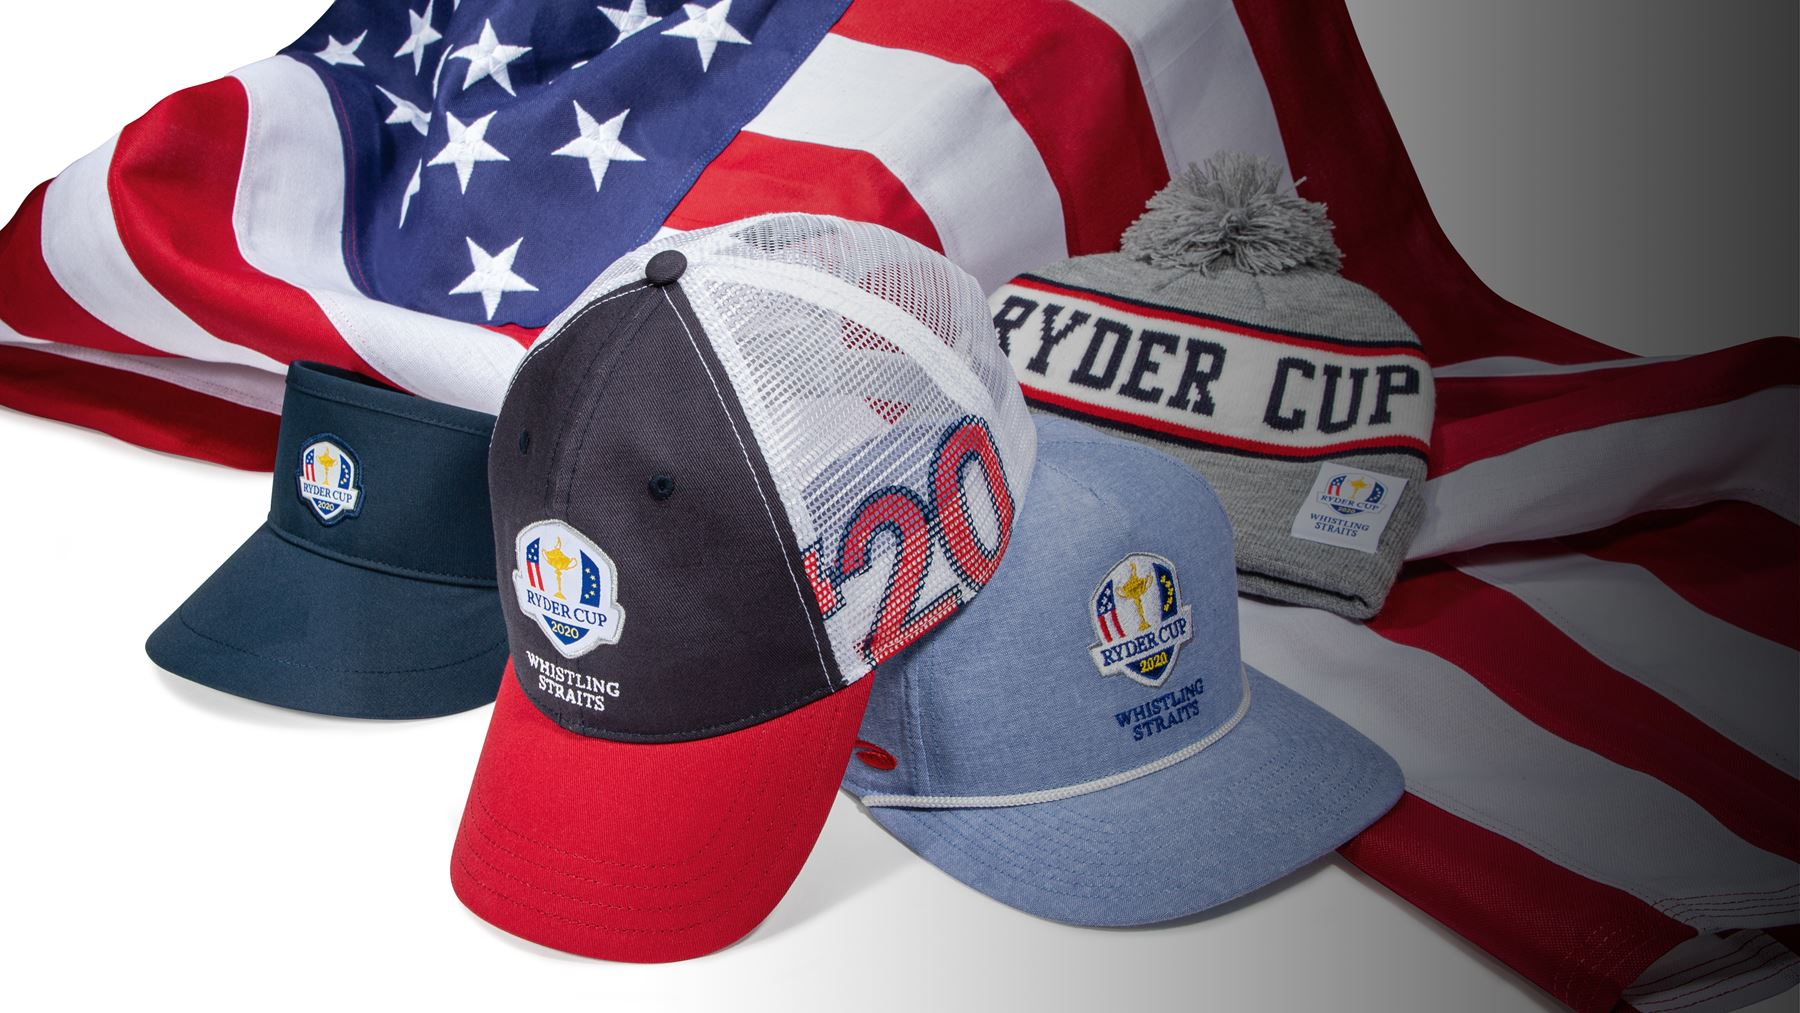 2020 Usa Ryder Cup Apparel.Ryder Cup 2020 Headwear Pukka Inc